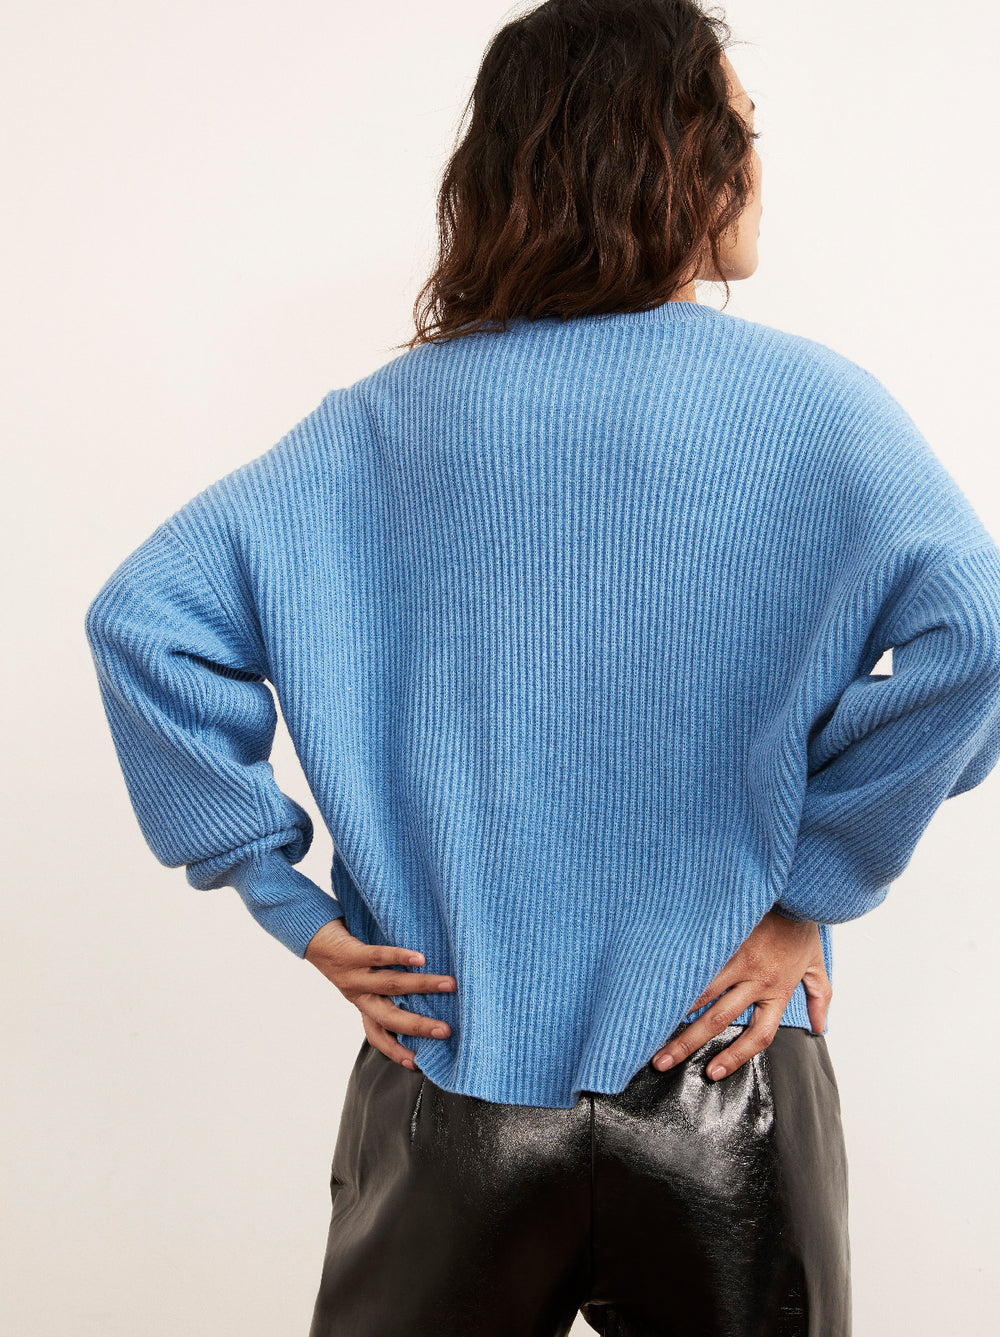 Hettie Blue Crew Neck Jumper by KITRI Studio